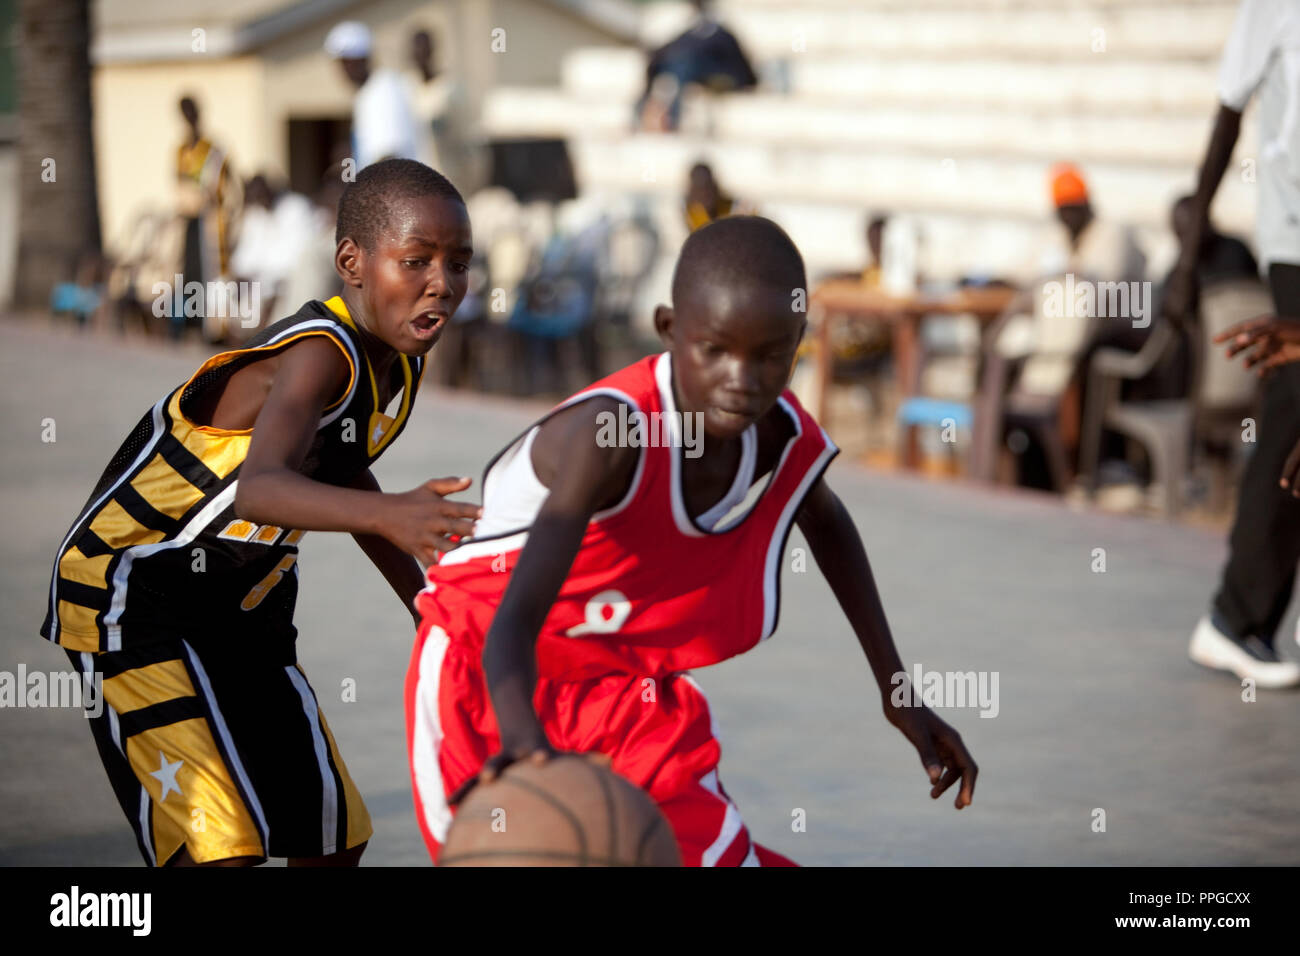 6e552f2757ef January 7, 2011 - Juba, Sudan - Southern Sudanese basketball players  compete in a local match in Juba basketball stadium in Nimra Talata, two  days before ...